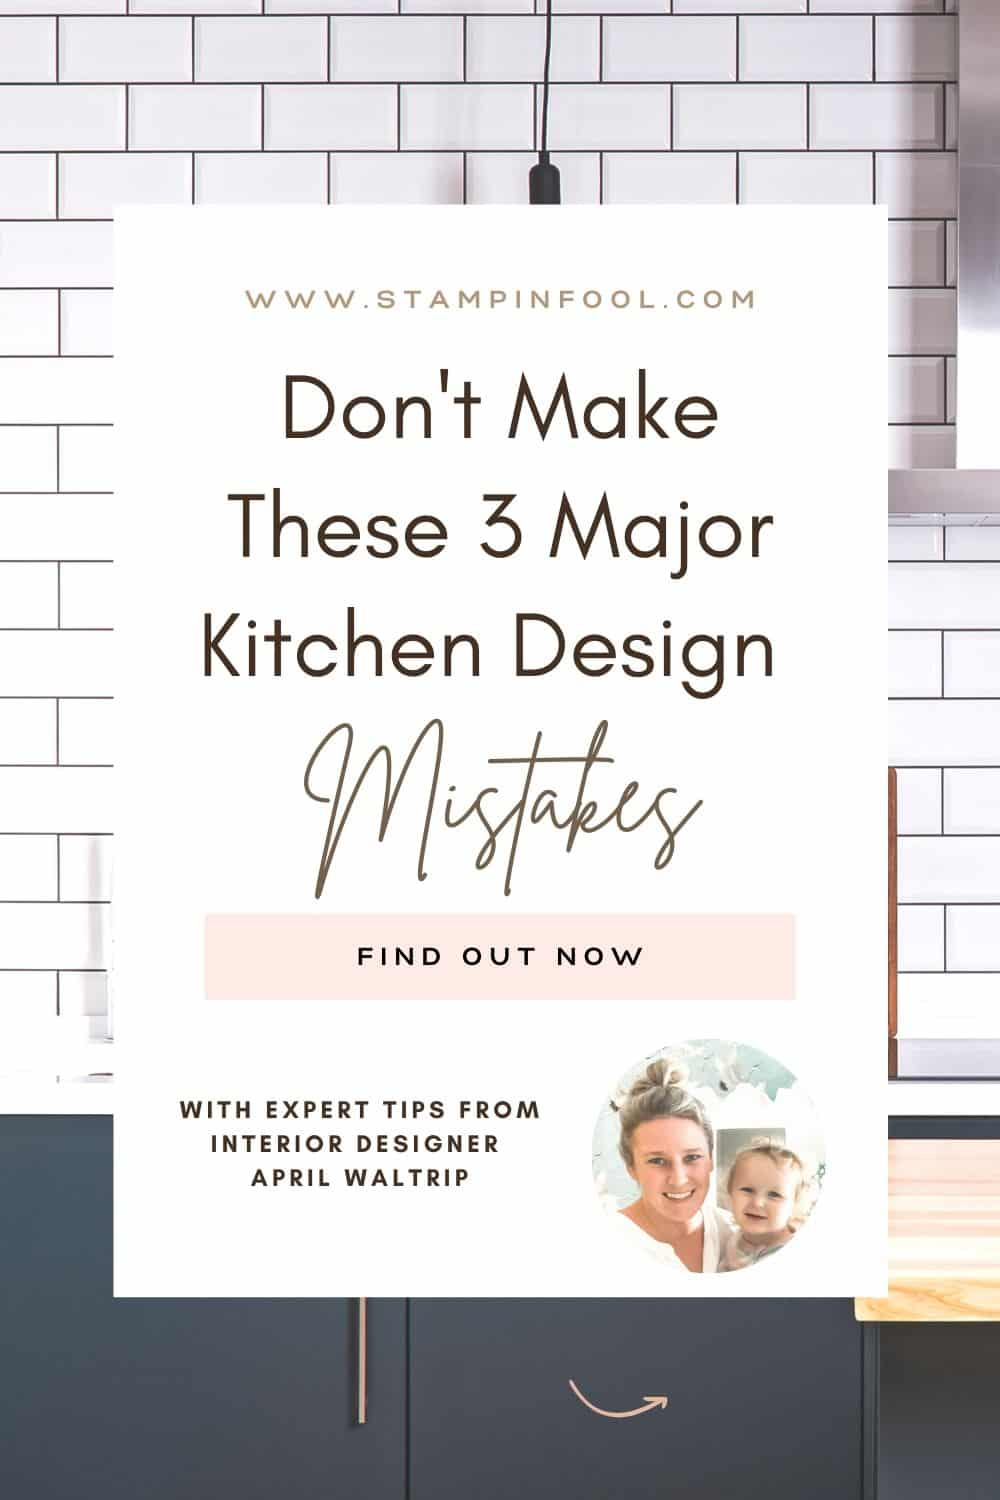 Don't Make These 3 Major Kitchen Renovation or Kitchen Design Mistakes